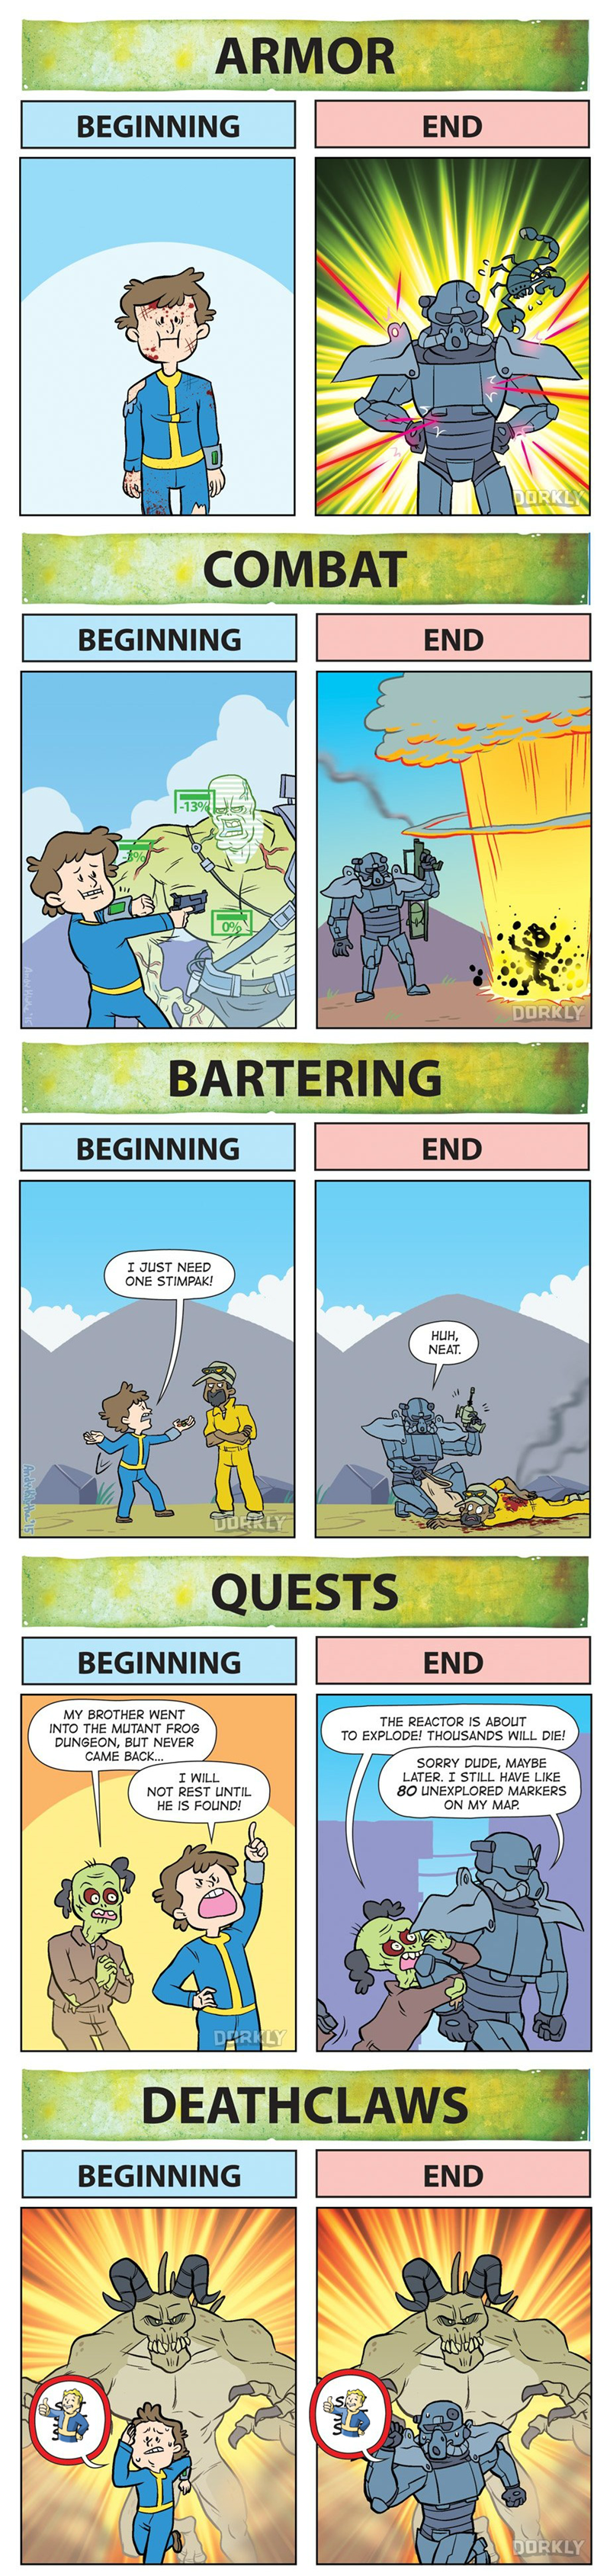 video game memes fallout beginning vs end